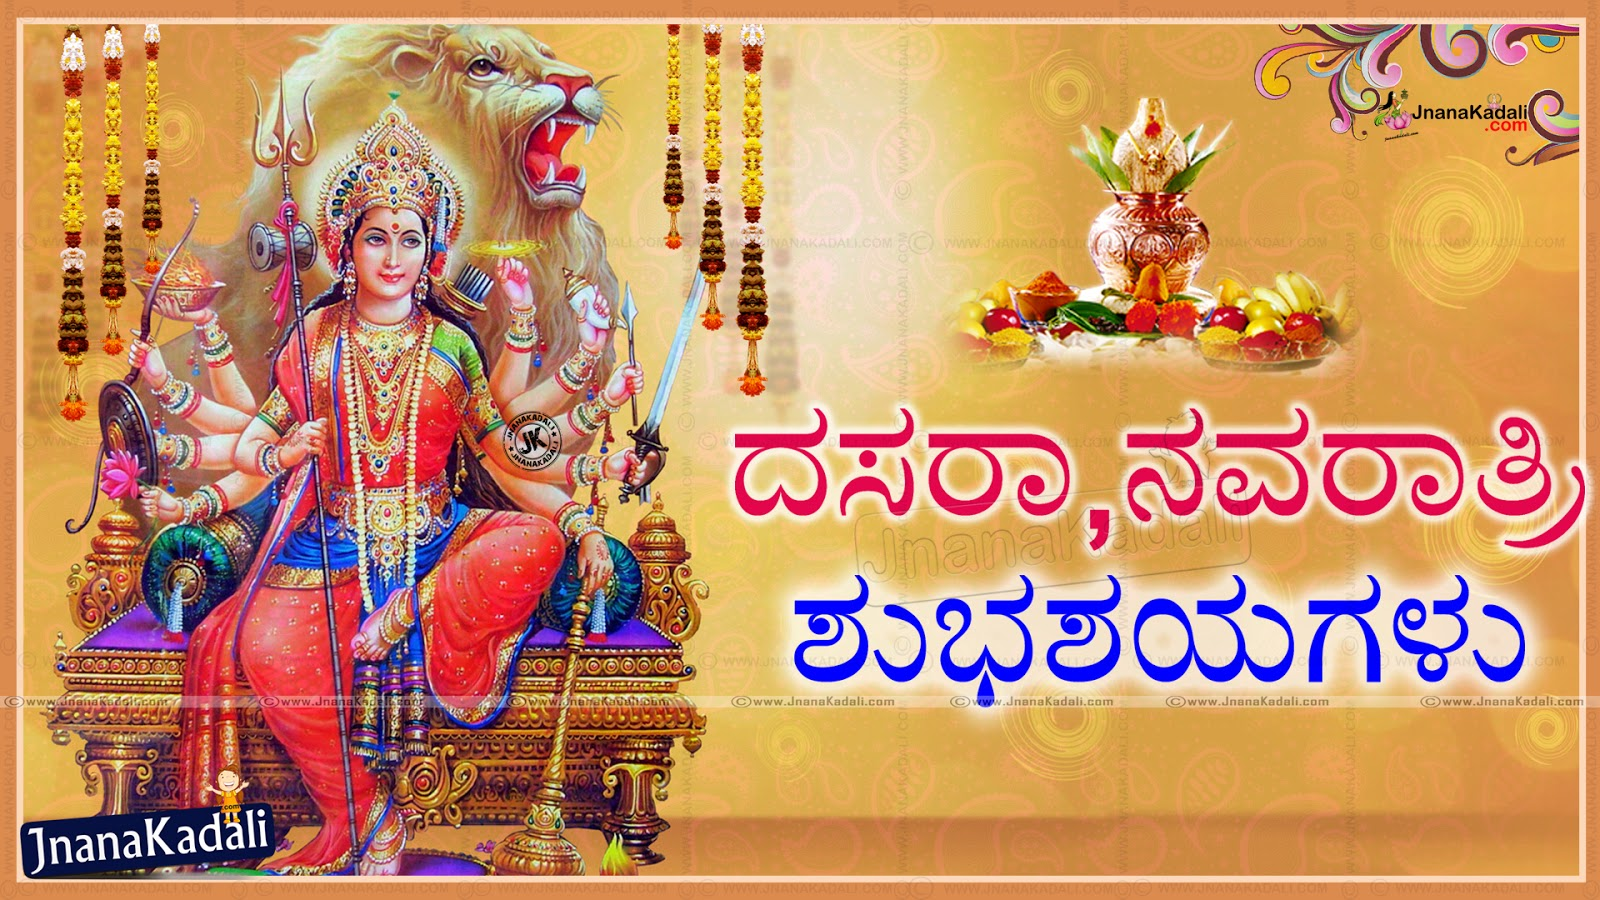 Best vijayadashami greetings wallpapers quotes in kannada jnana twitter facebook url print email wish you happy dasara telugu quotes and nice imageshappy vijaya dashami 2015 quotes greetings wishes images wallpapers m4hsunfo